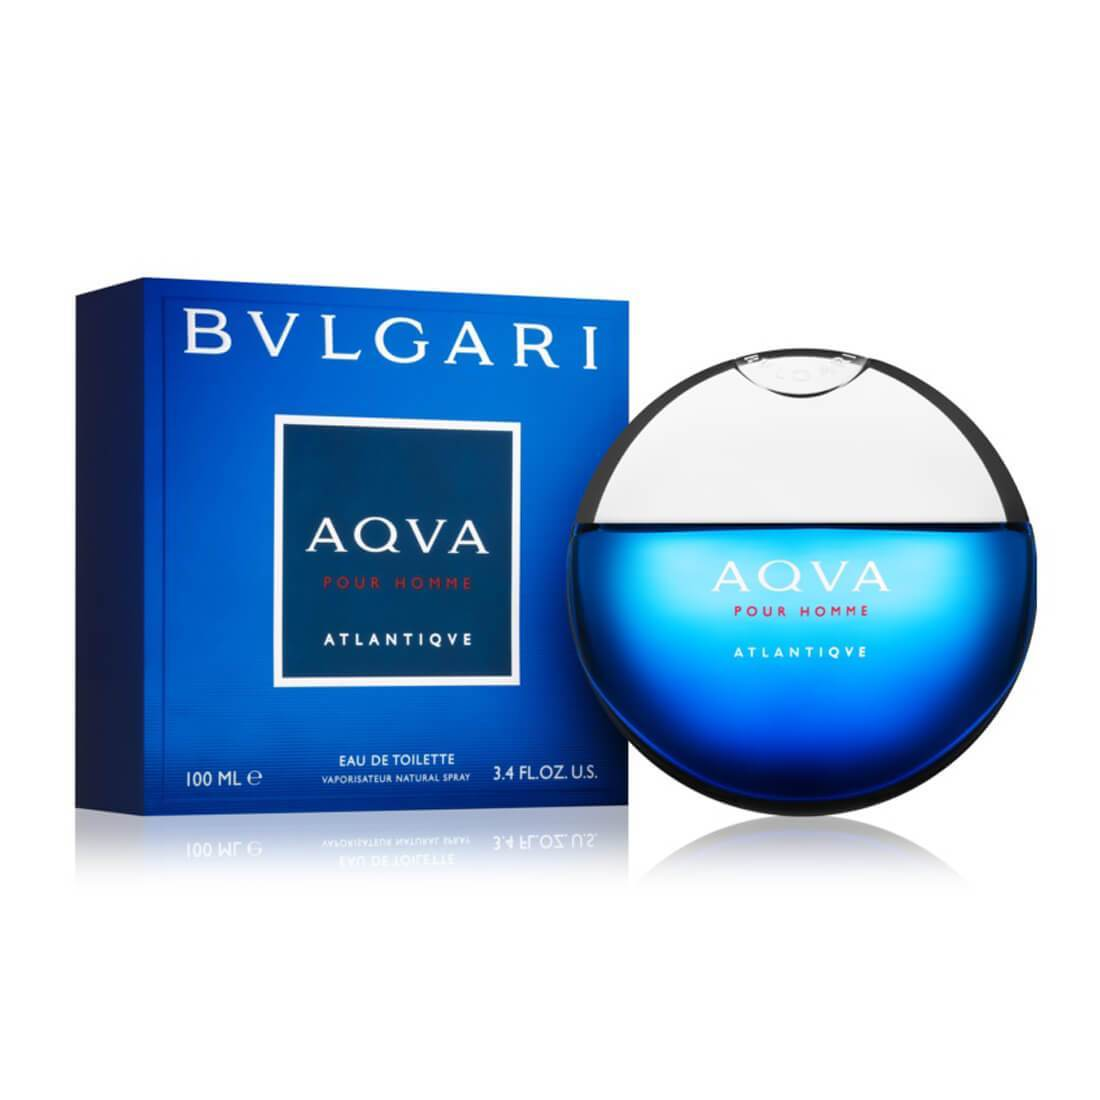 Bvlgari Aqva Pour Homme Atlantique EDT Perfume For Men - 100ml